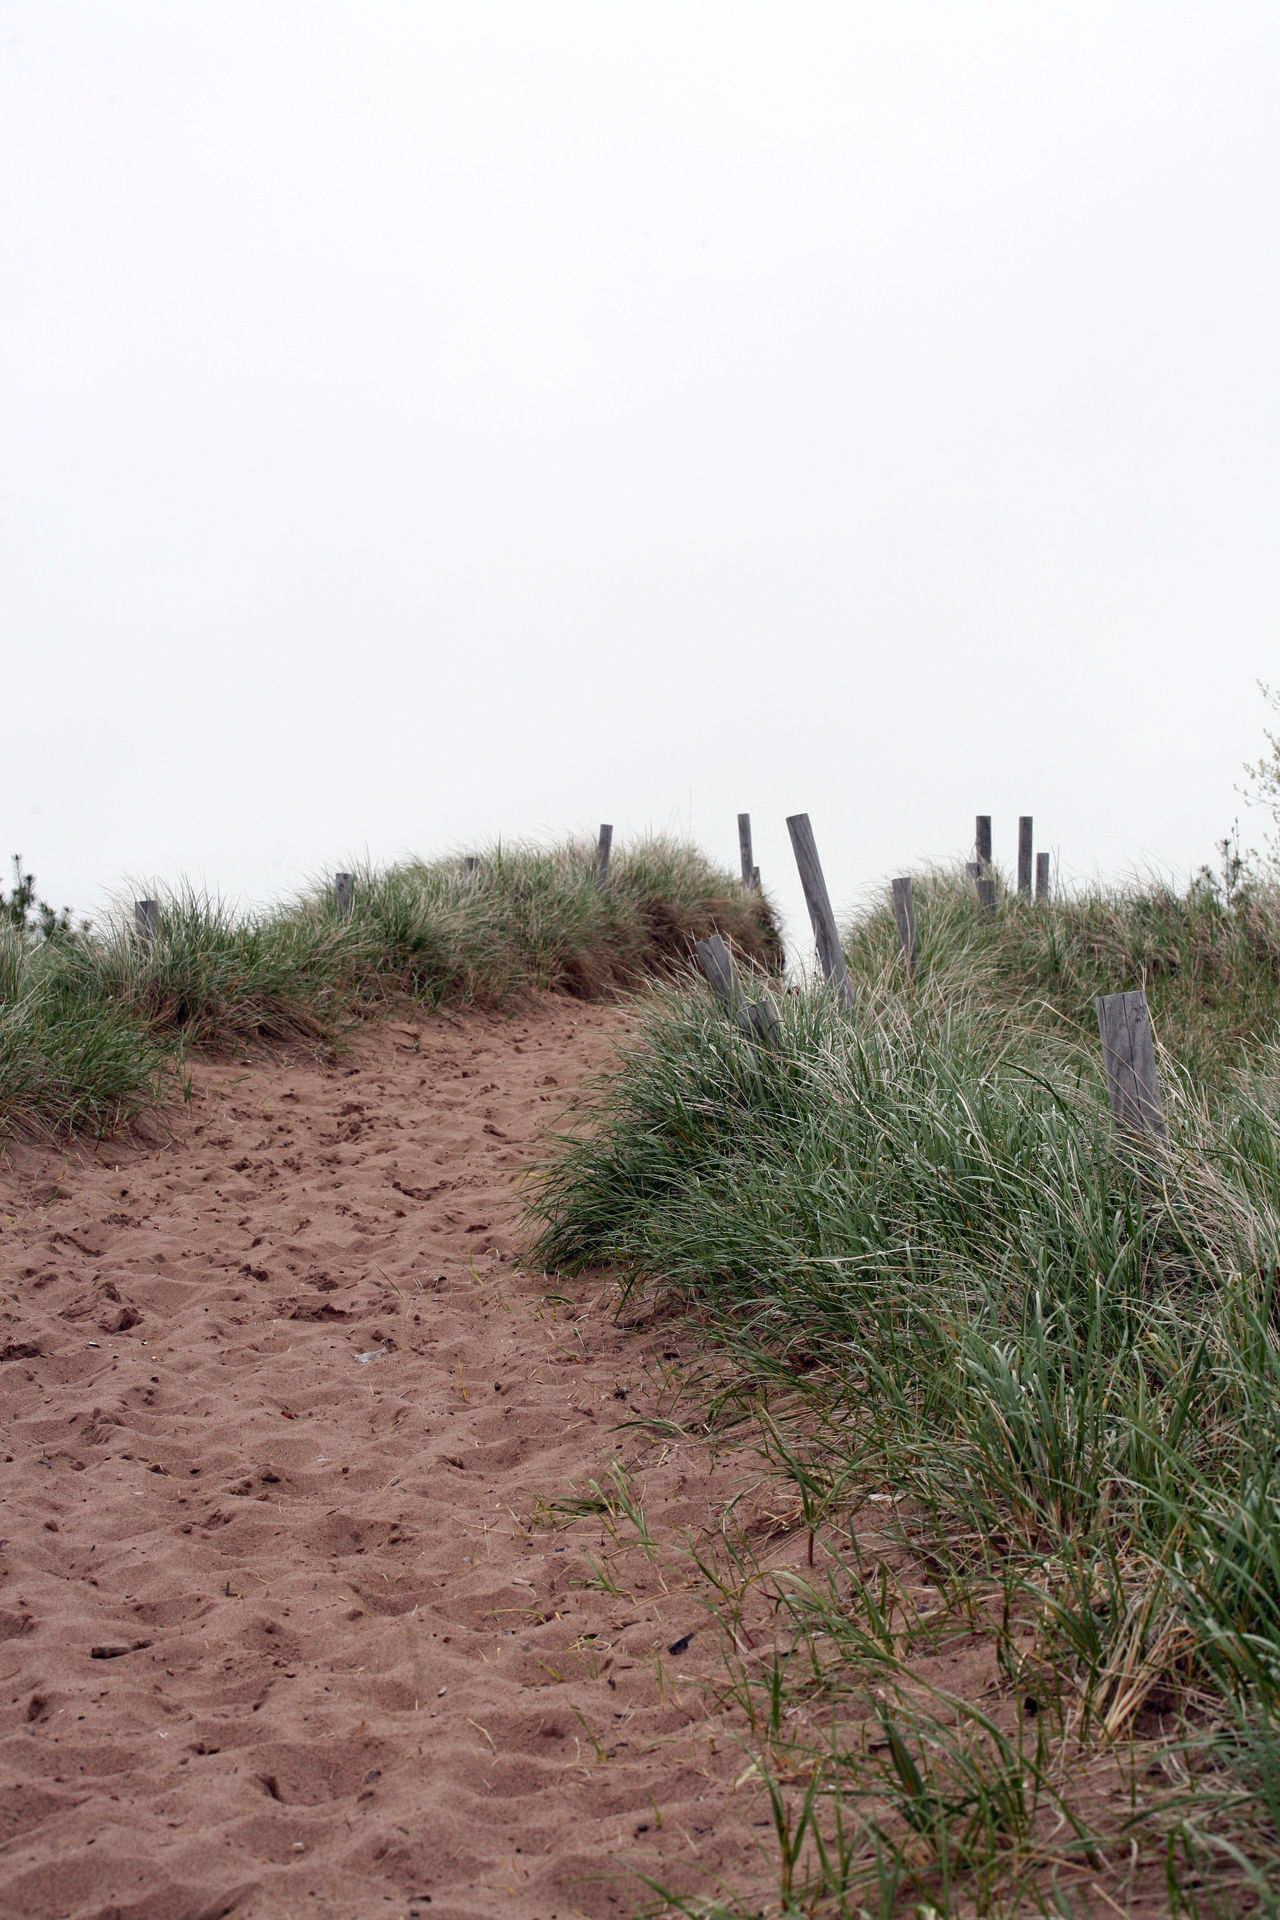 Sandy footpath walking up from a beach surrounded by tall green grass and wooden posts. Beach Day Footpath Grass Green Color Outdoors Sand Sky Tourism Walking Path Wooden Post